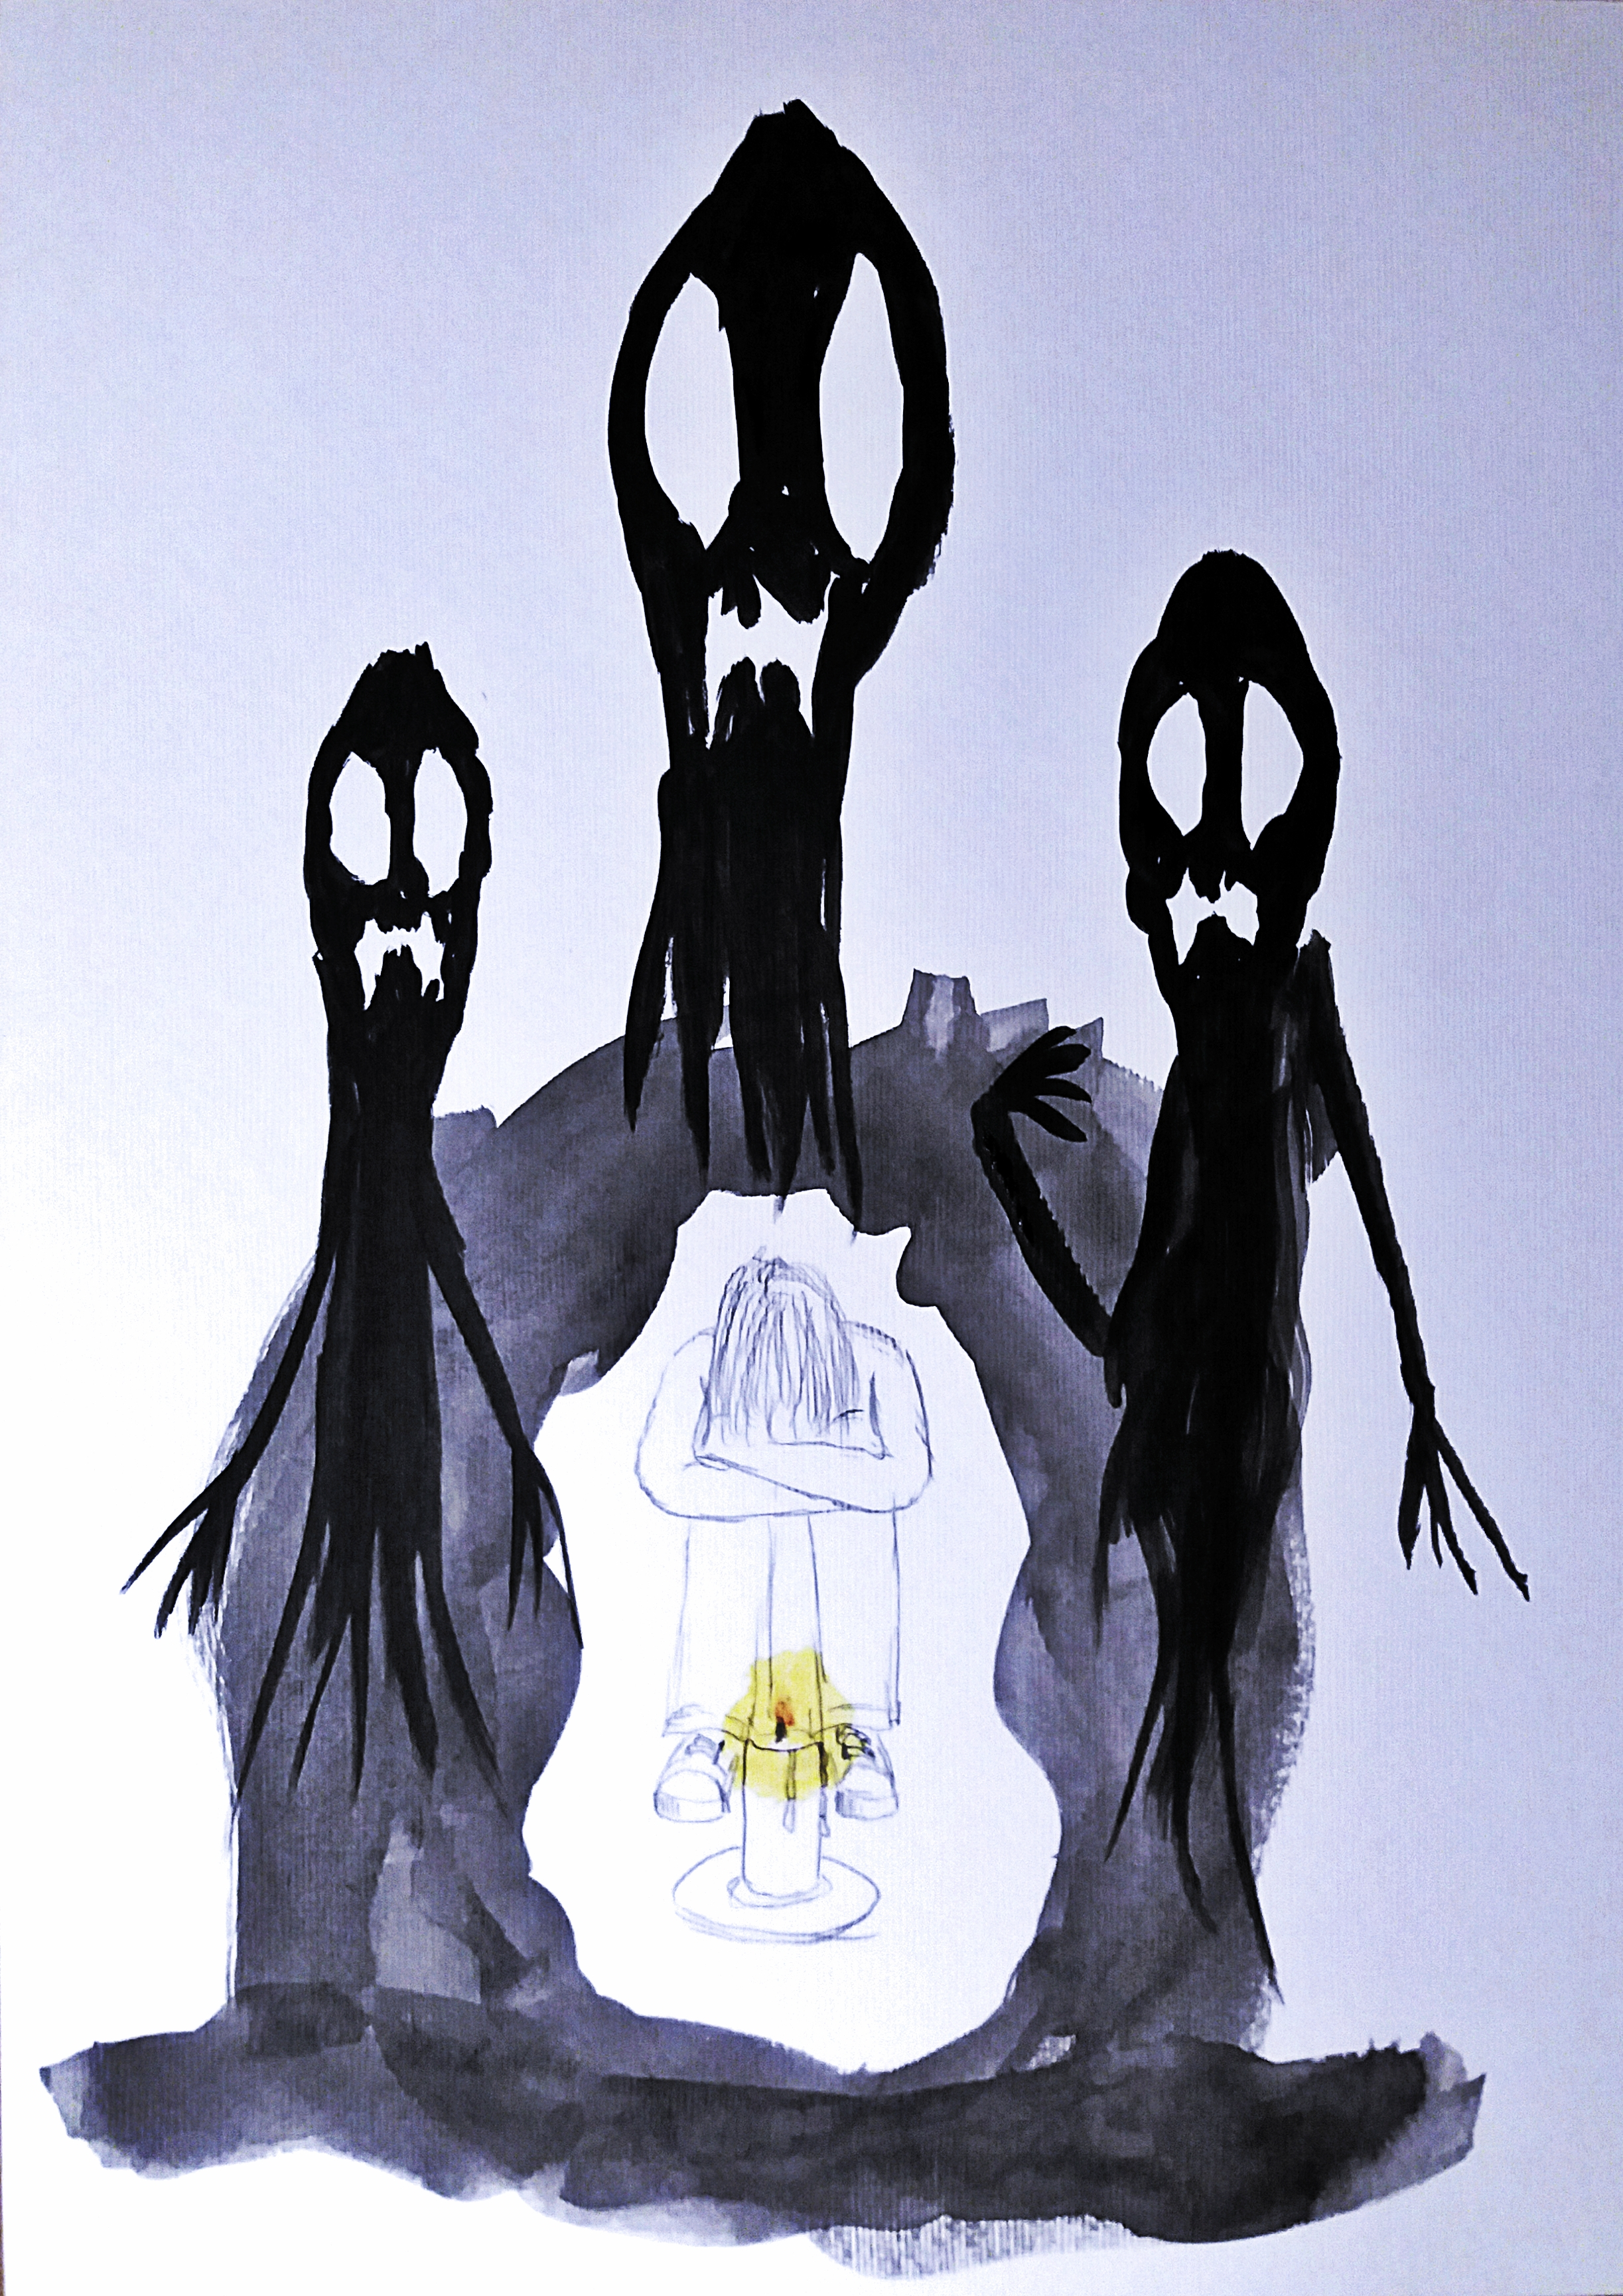 A pencil and acrylic sketch on paper of a girl sat looking dejected, arms around her knees and head down, in front of a lit candle with a glowing halo around the flame. Around her is darkness out of which are rising black nightmare figures